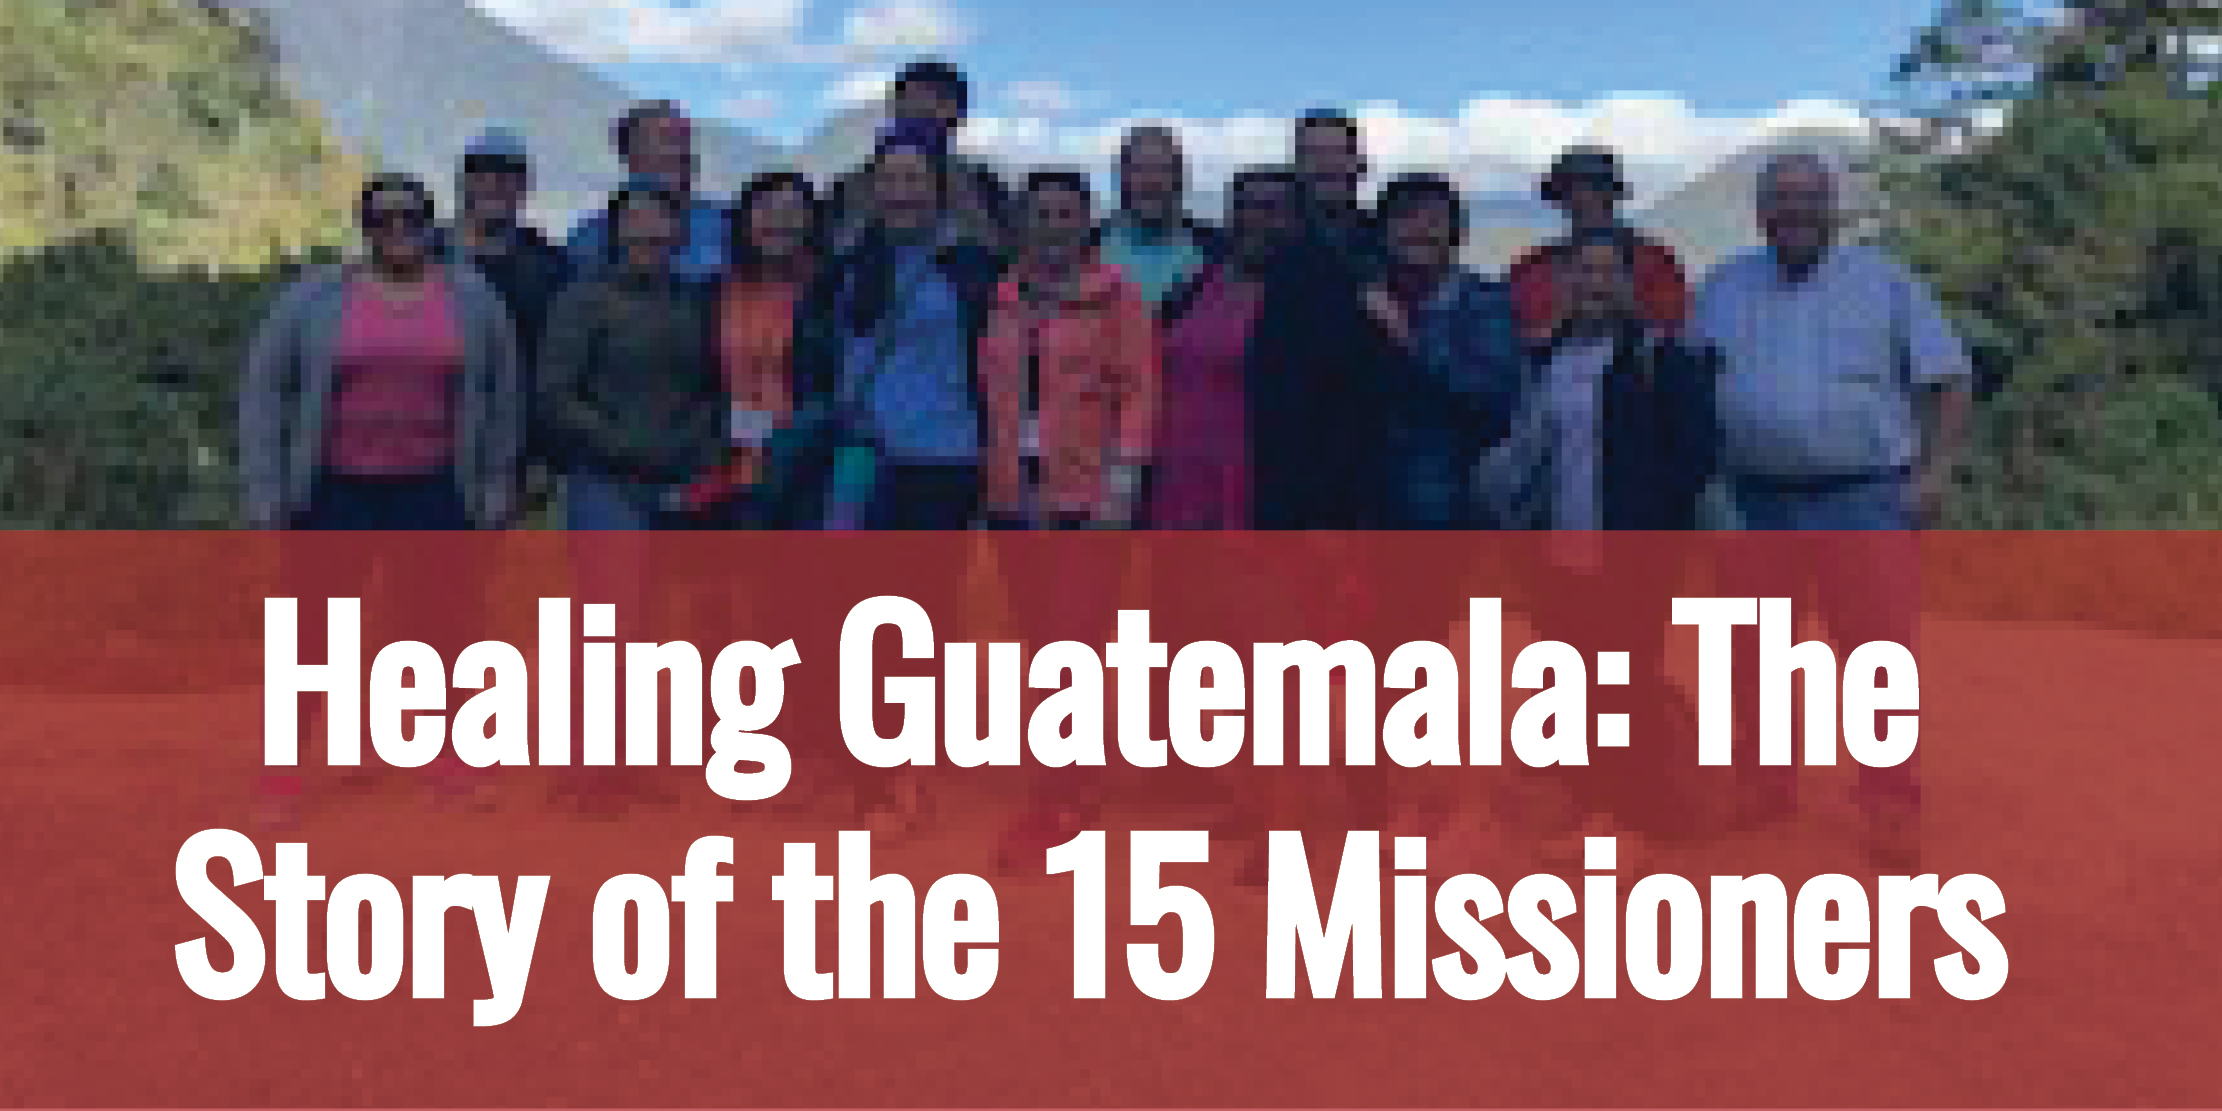 Healing Guatemala, the Story of the 15 Missioners